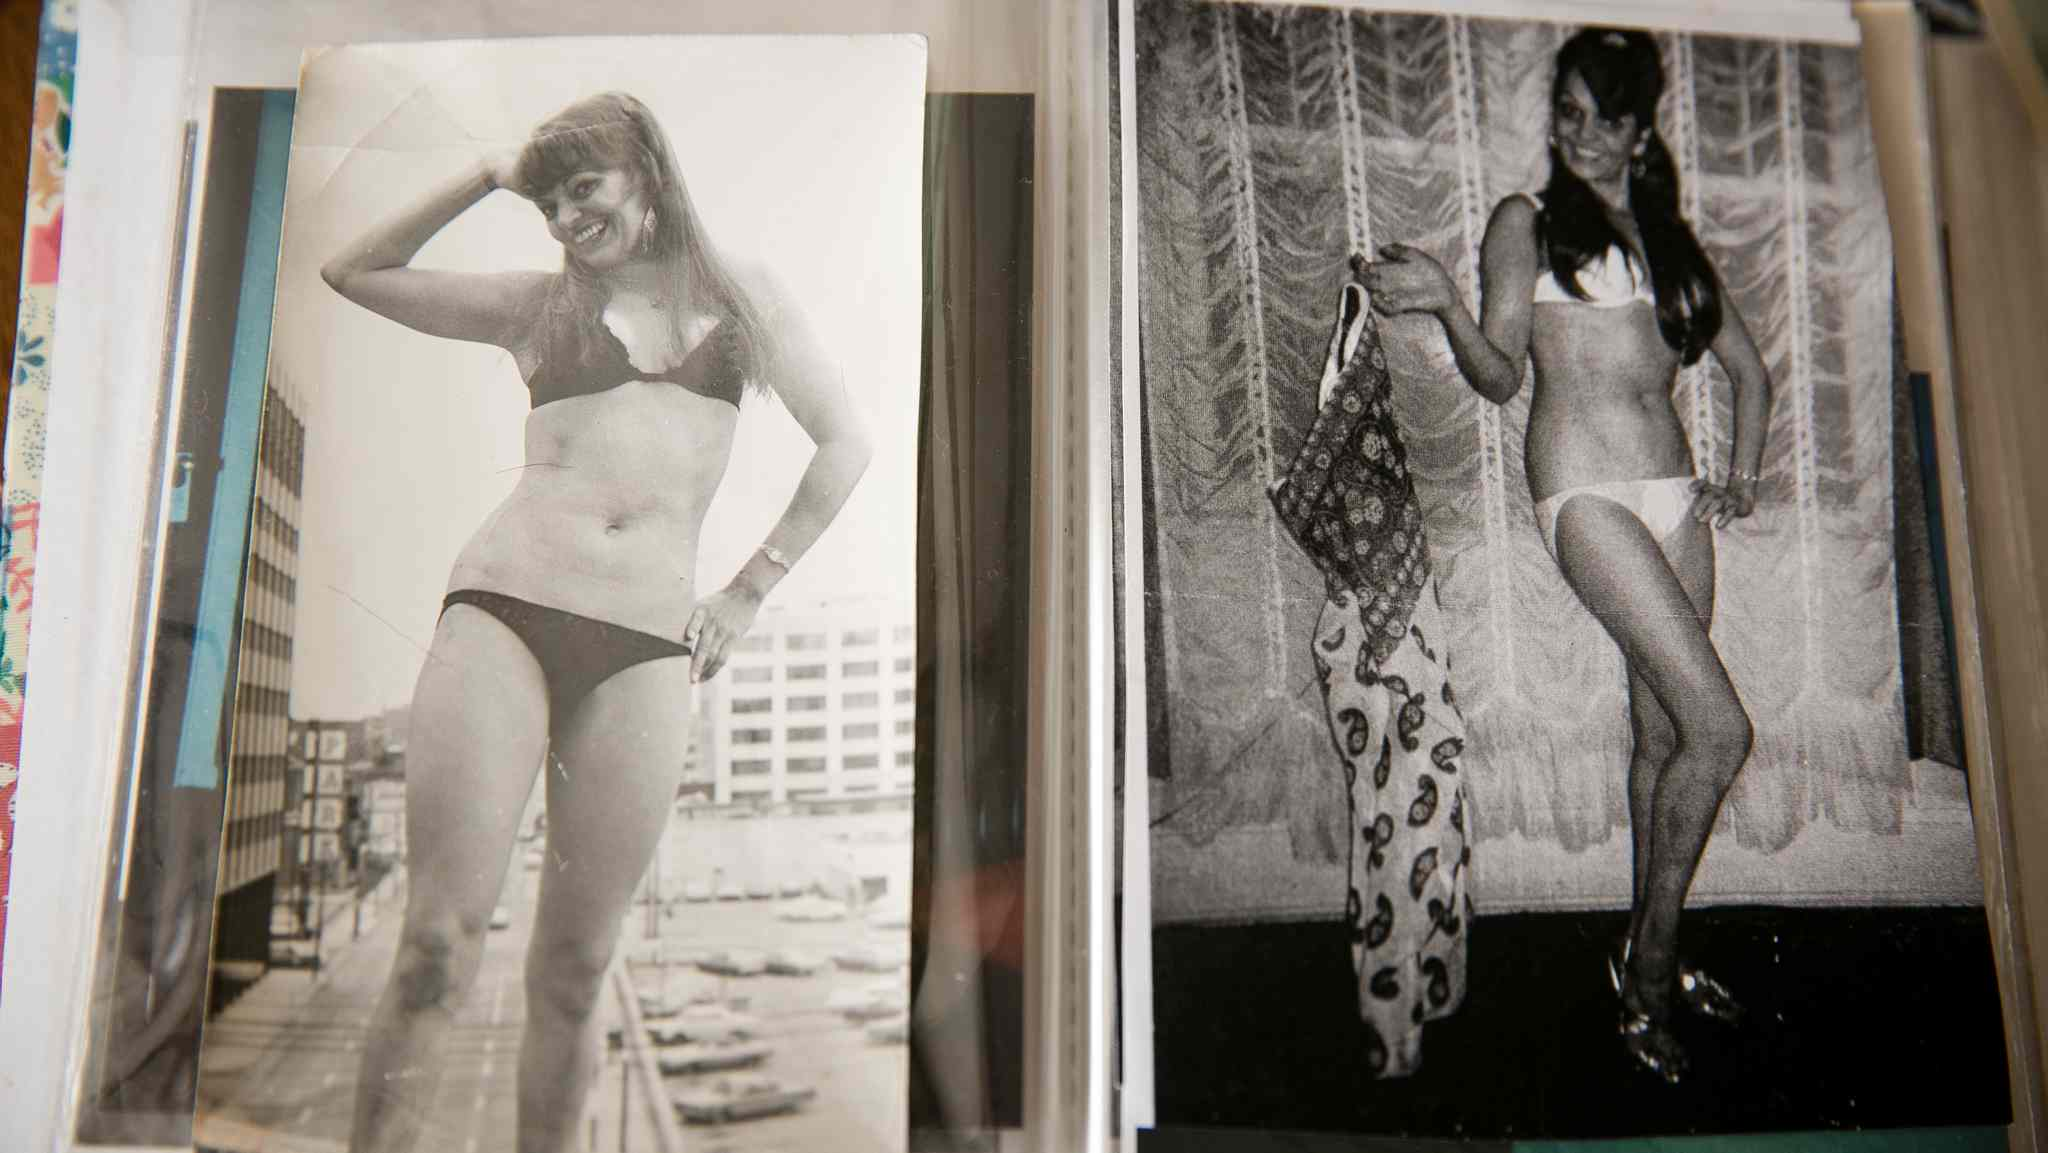 Photos of Gisela Wuensch from her dancing days in decades past.